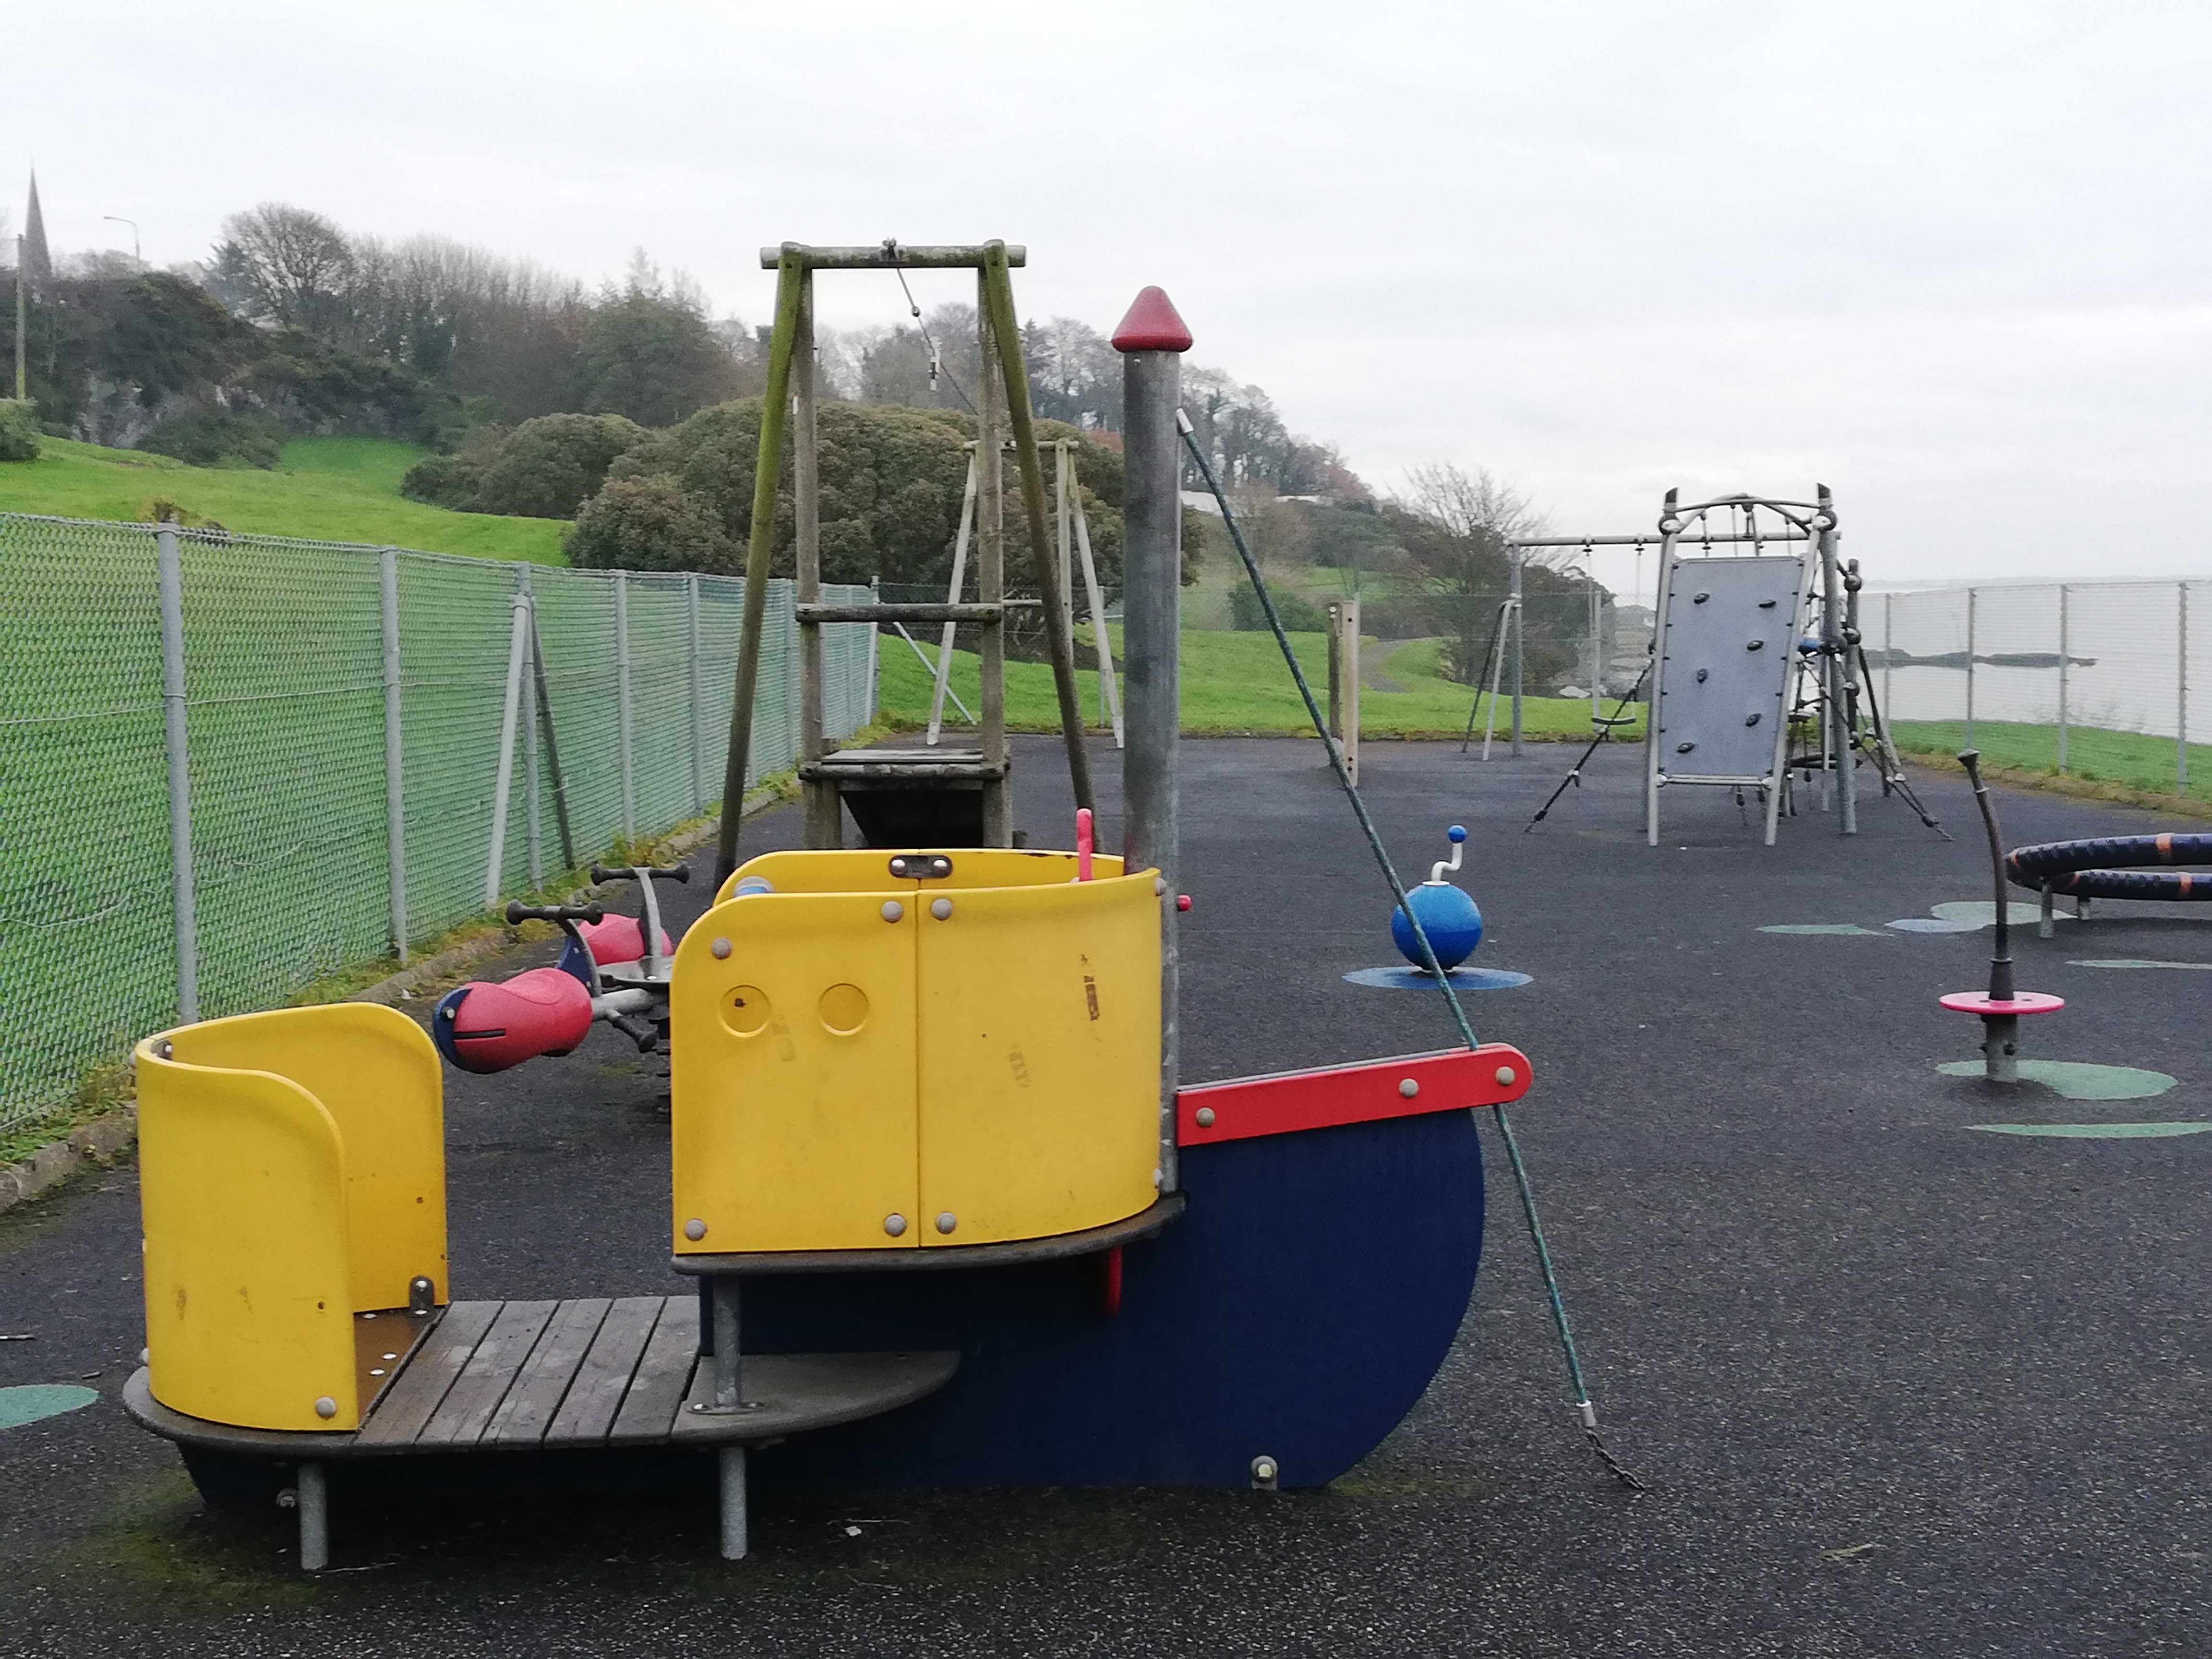 Moville play park